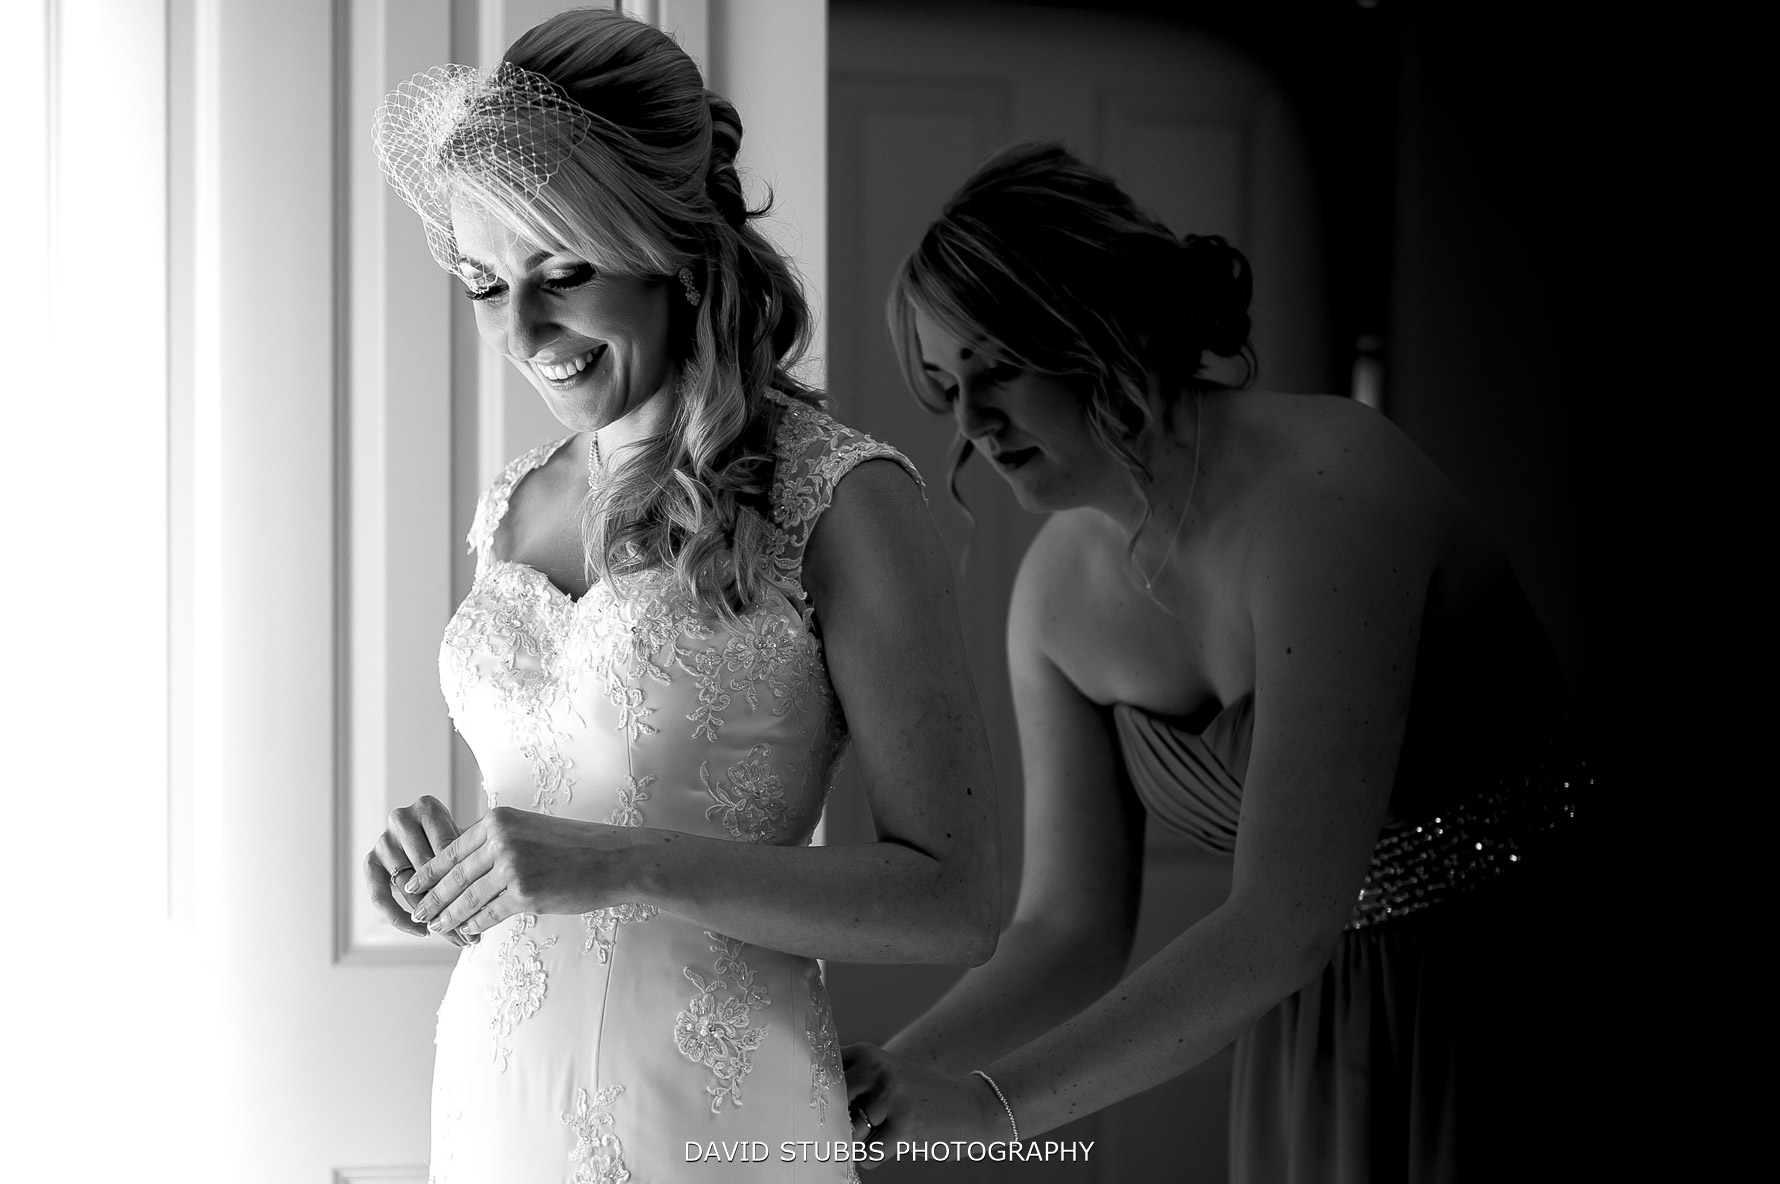 having her wedding dress done up by the window